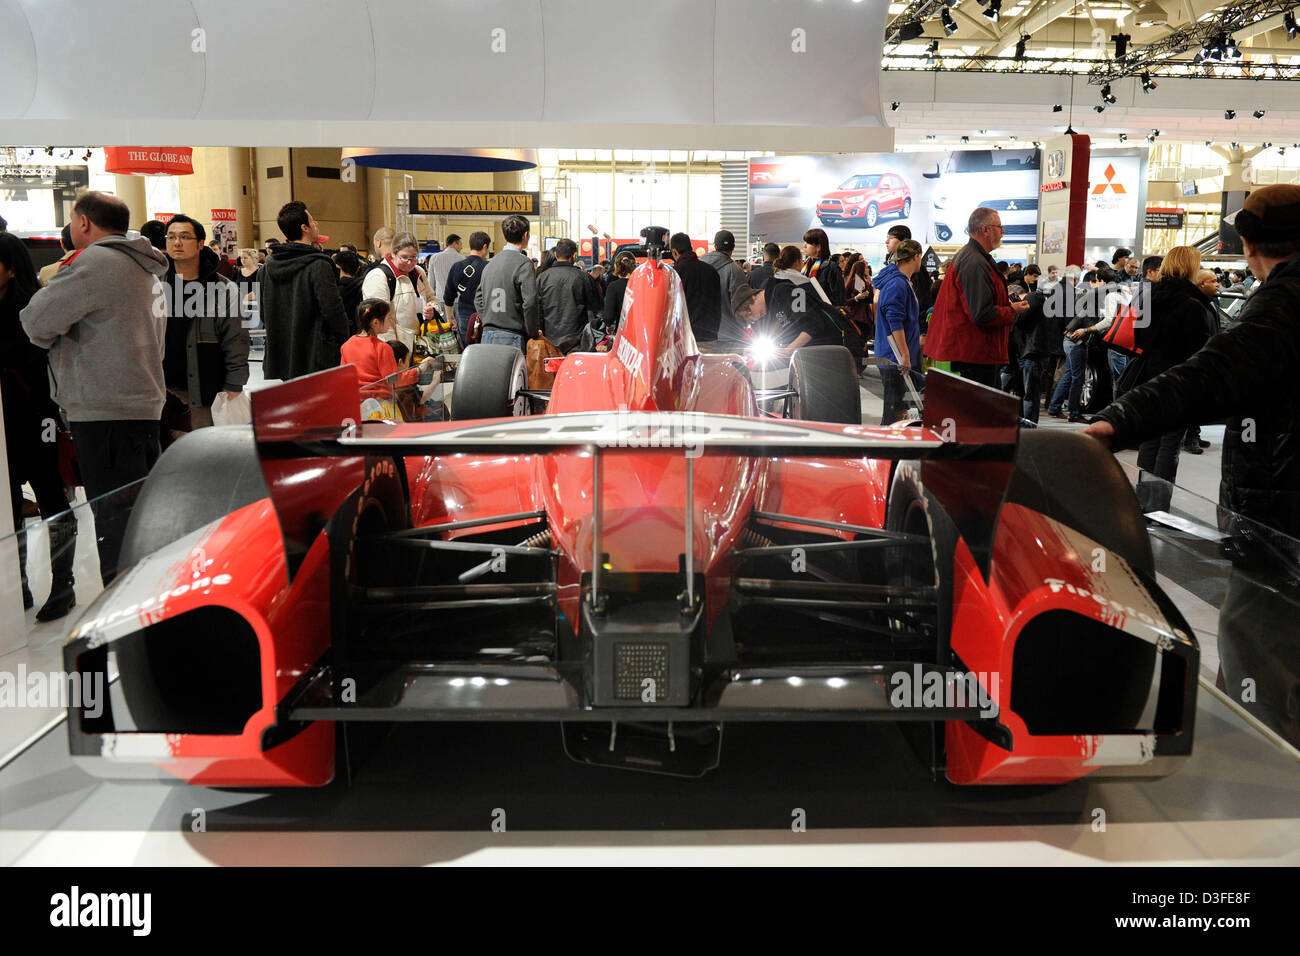 February 18, 2013. Toronto, Canada. Family Day at the 2013 Canadian International Autoshow. In picture, auto enthusiast - Stock Image